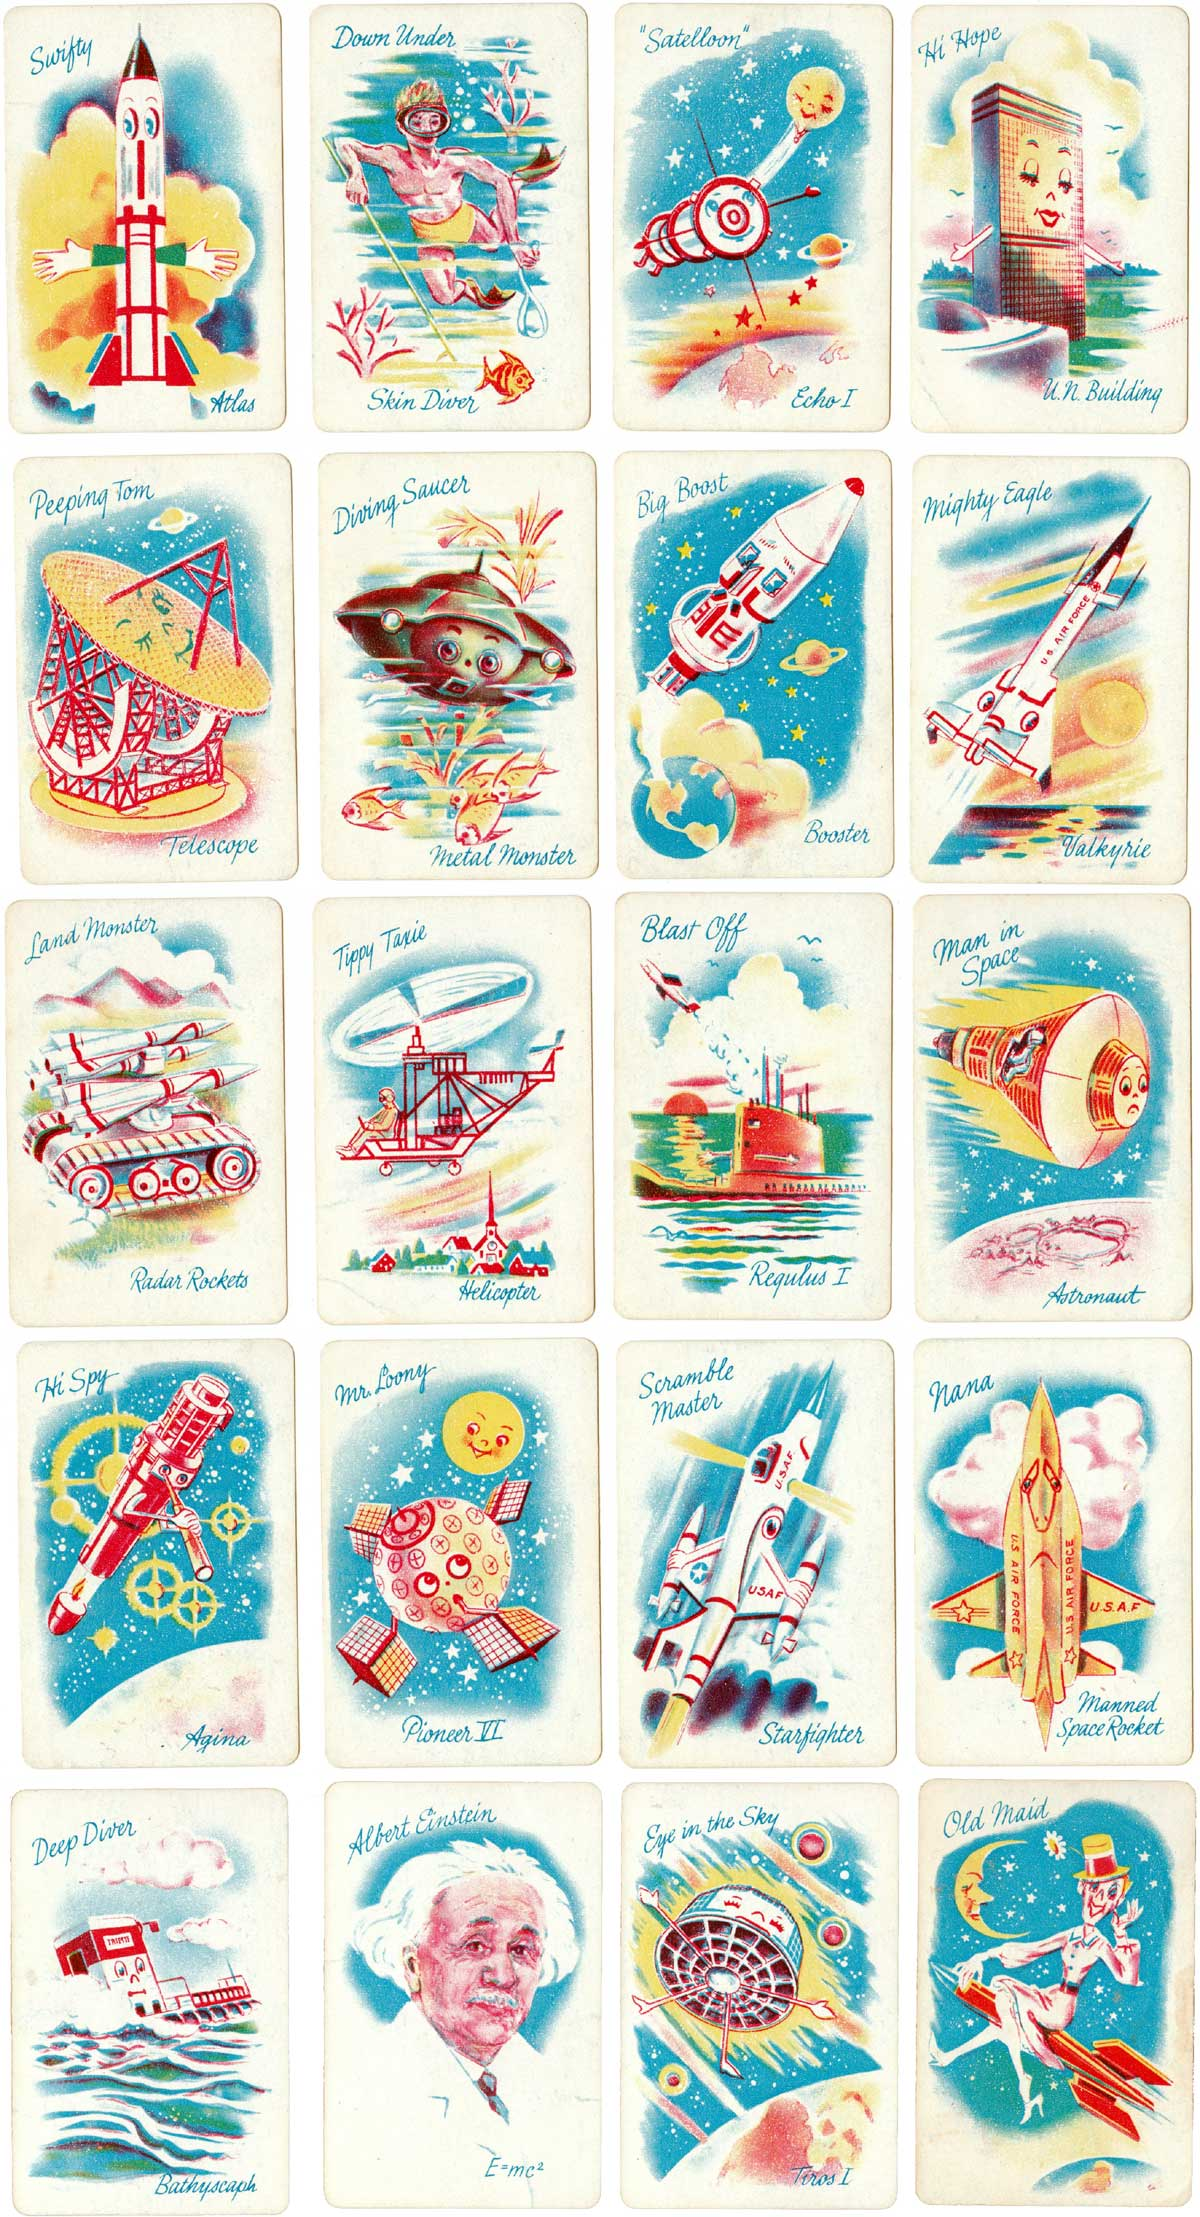 The 'Space Age Game of Old Maid' published by Russell Manufacturing Company, Leicester, Massachusetts, USA, c.1965